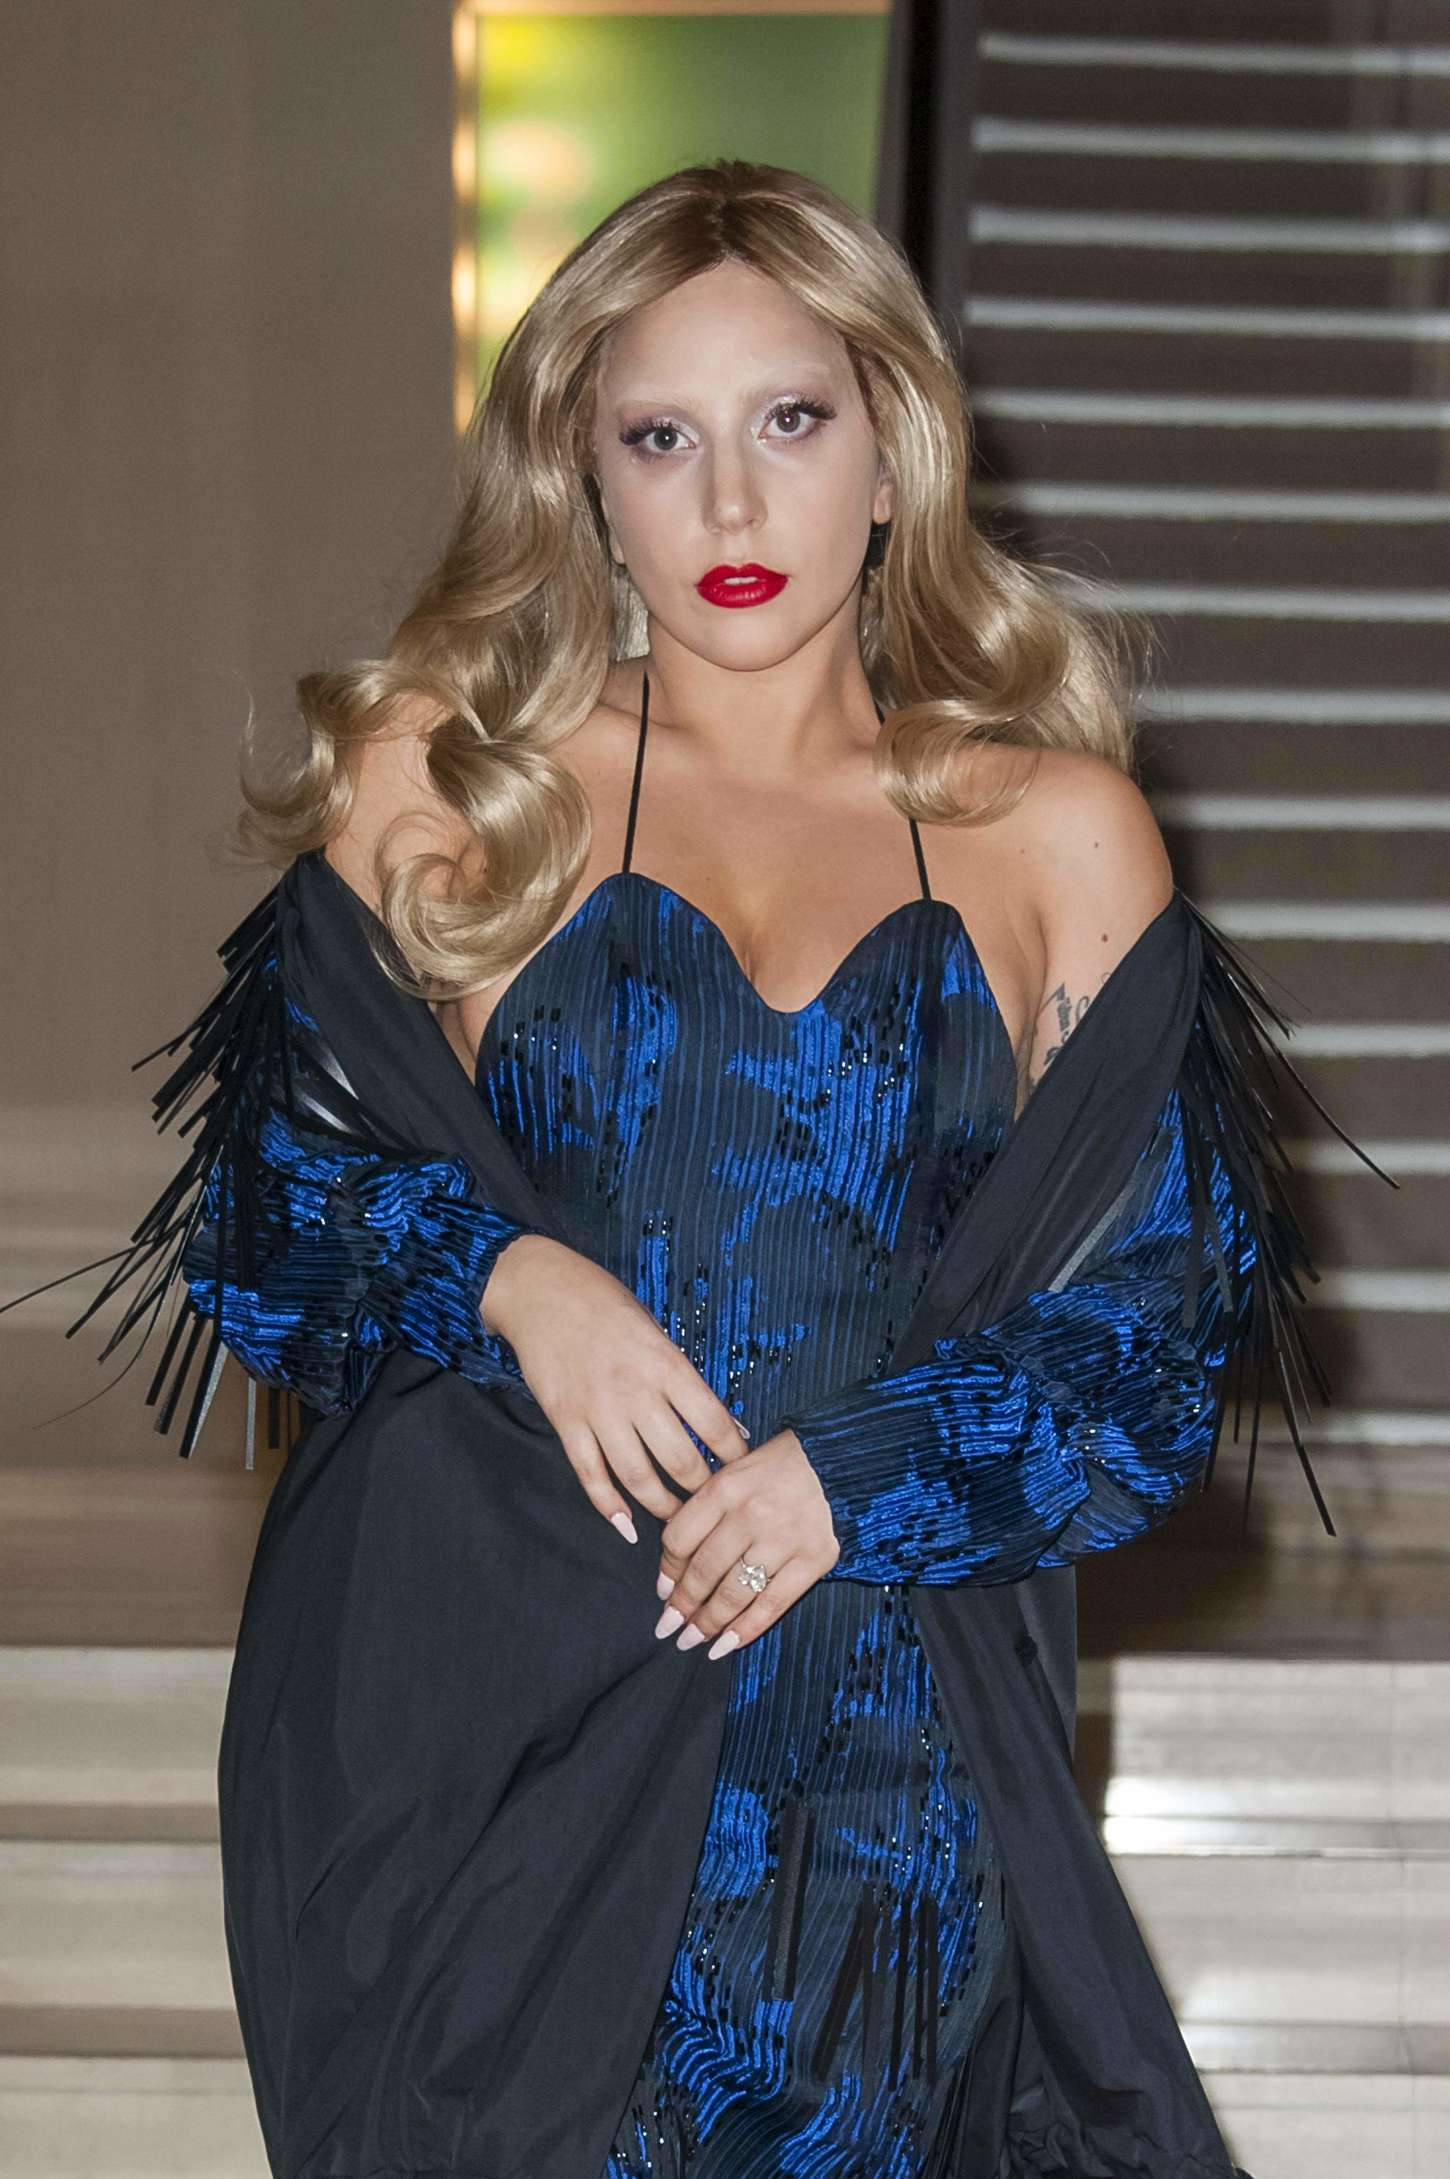 Lady Gaga - Leaving the Chanel Store in Paris